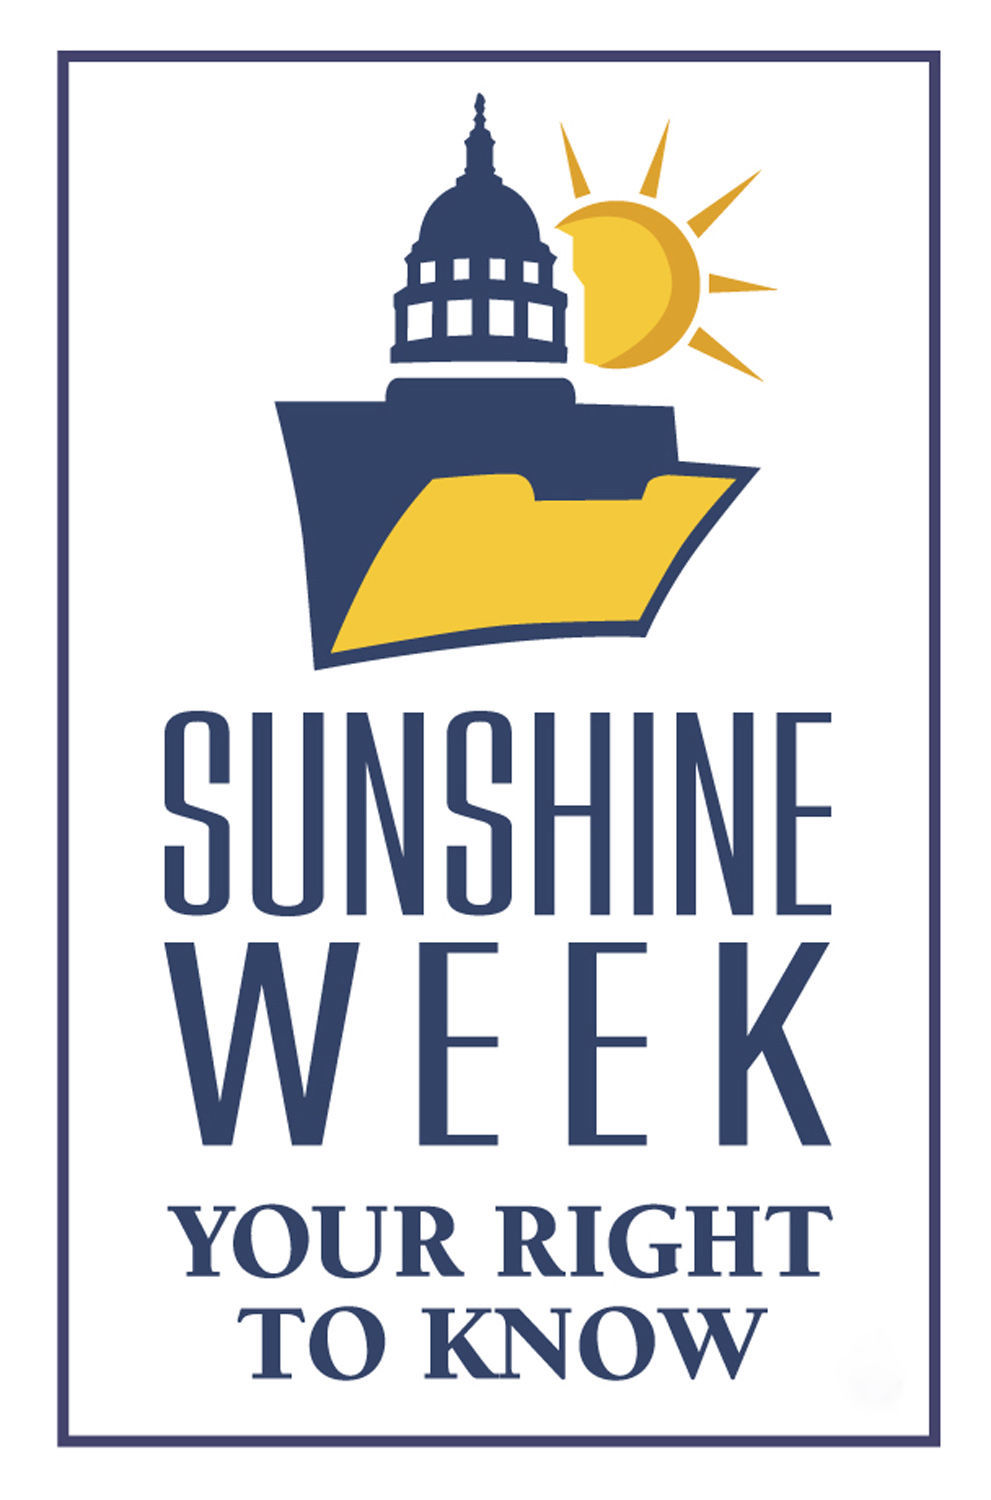 Sunshine Week 2019